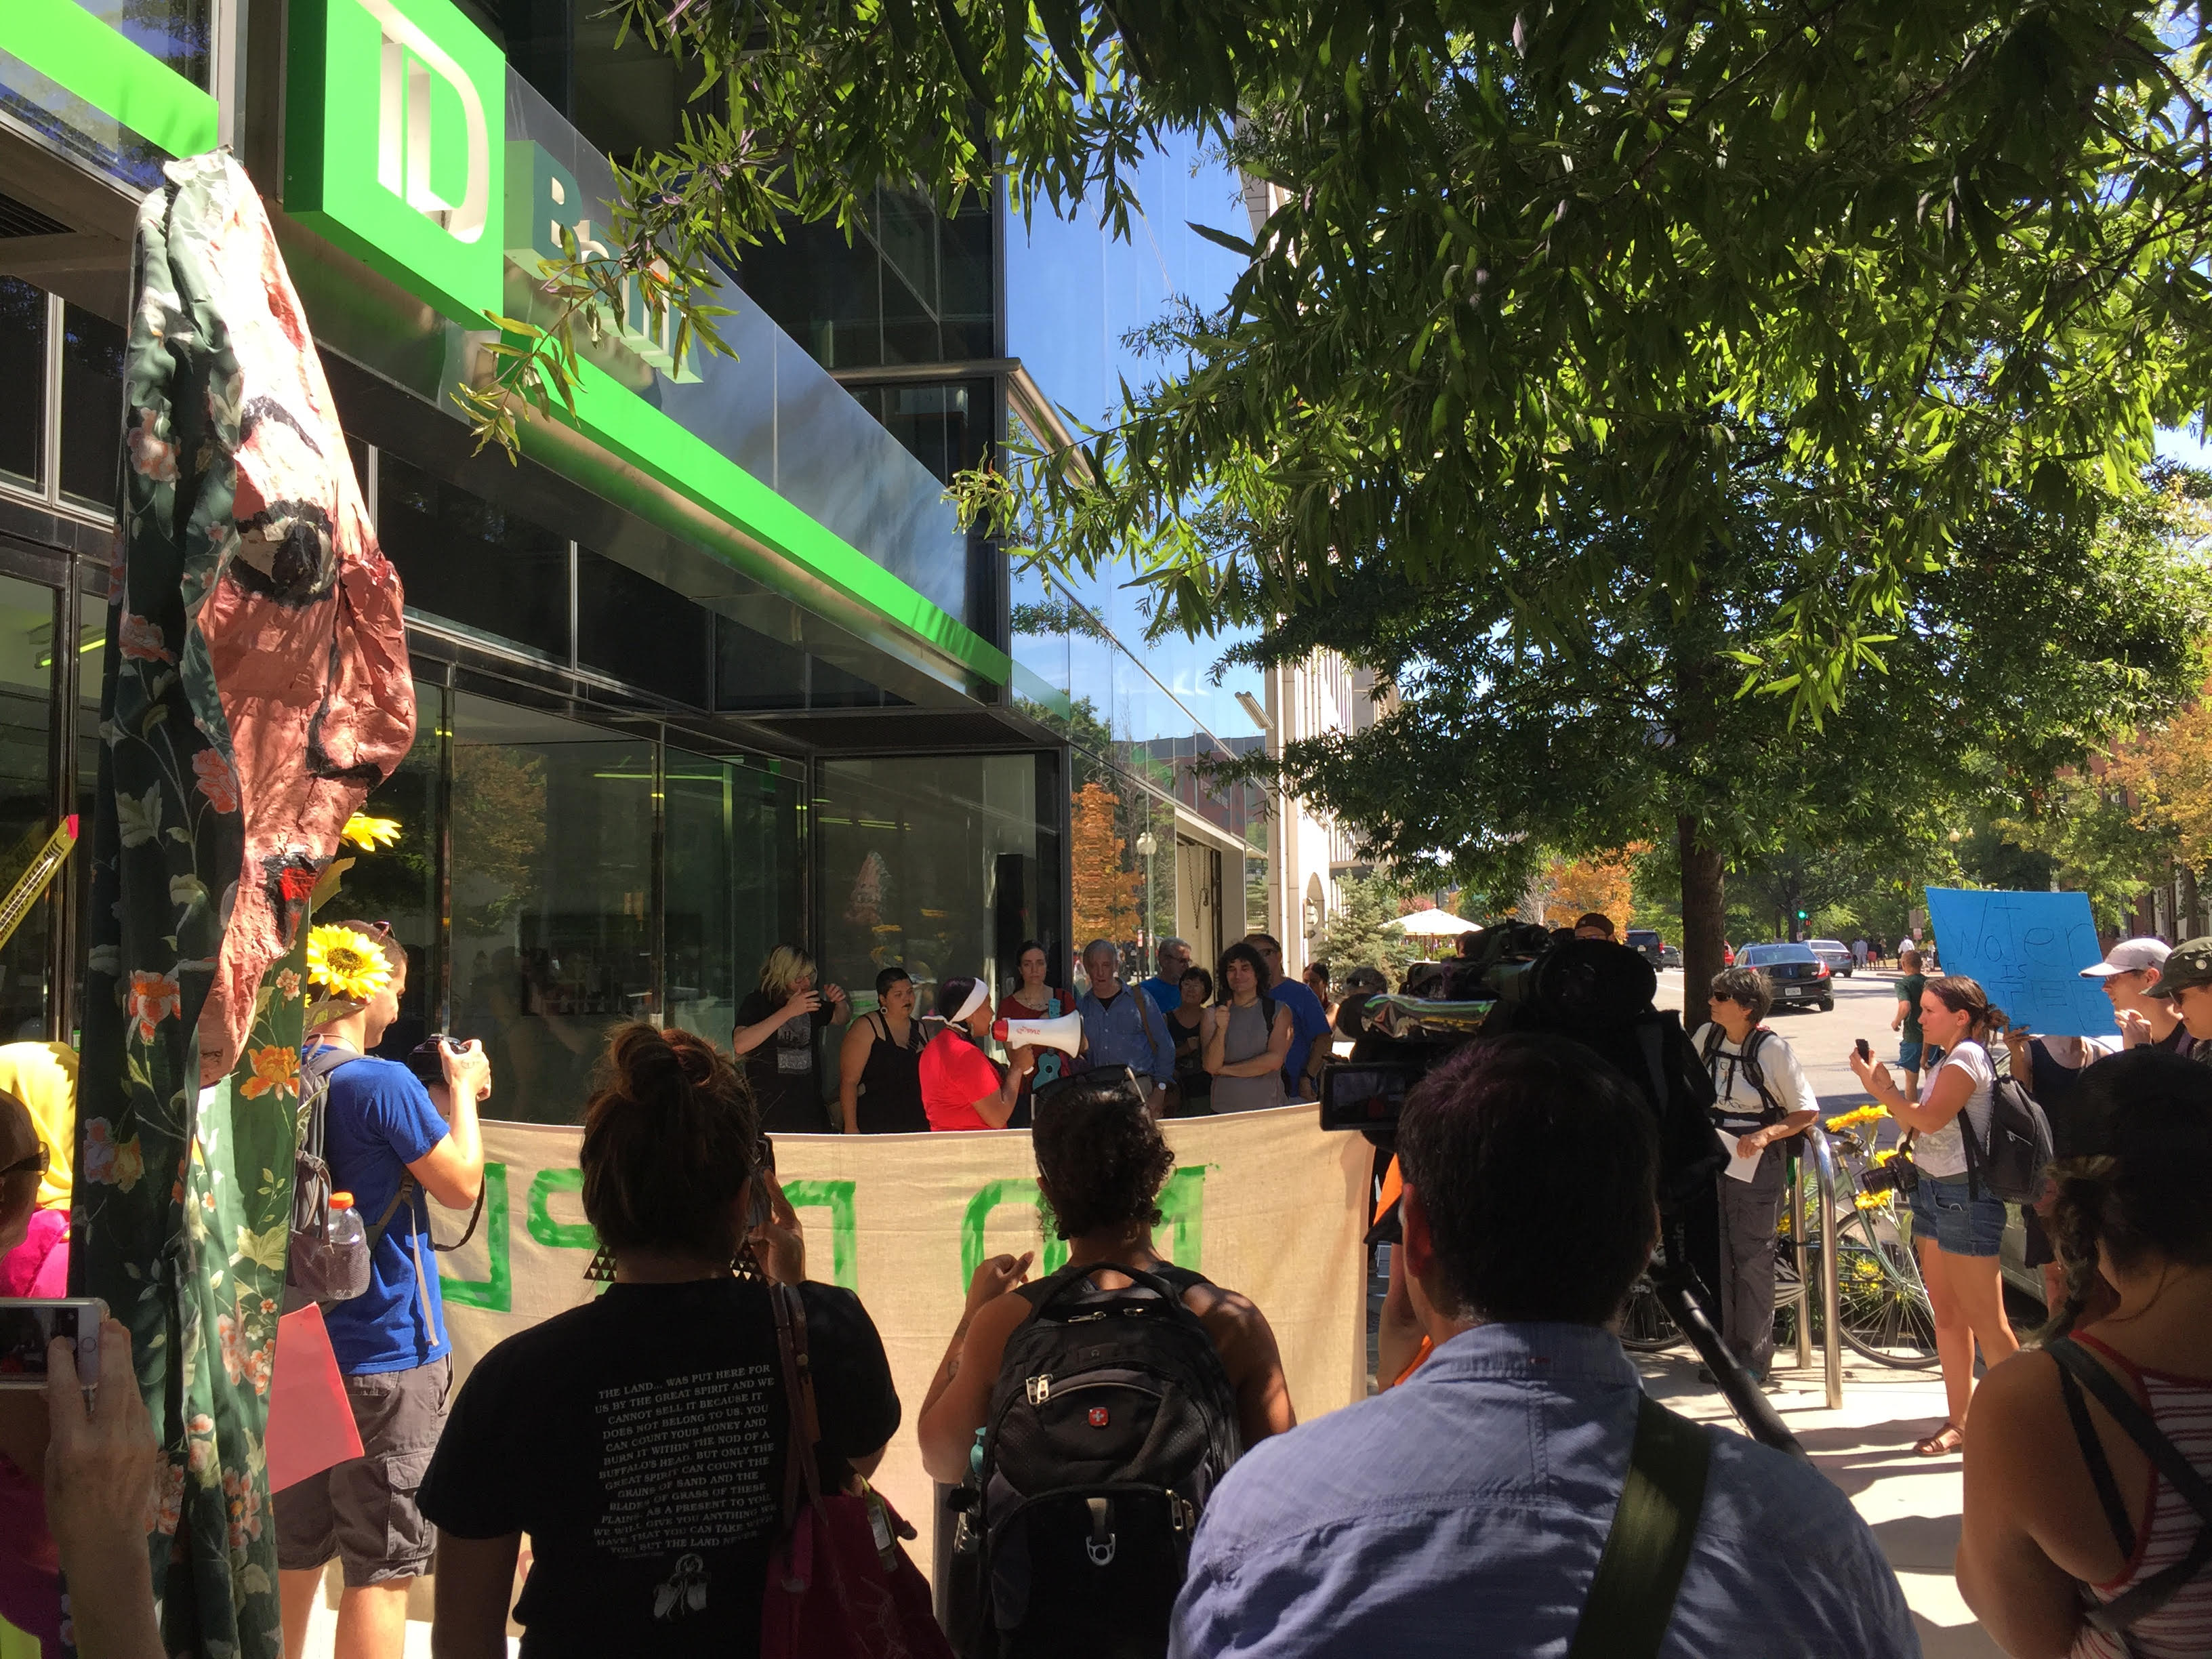 TD bank protest